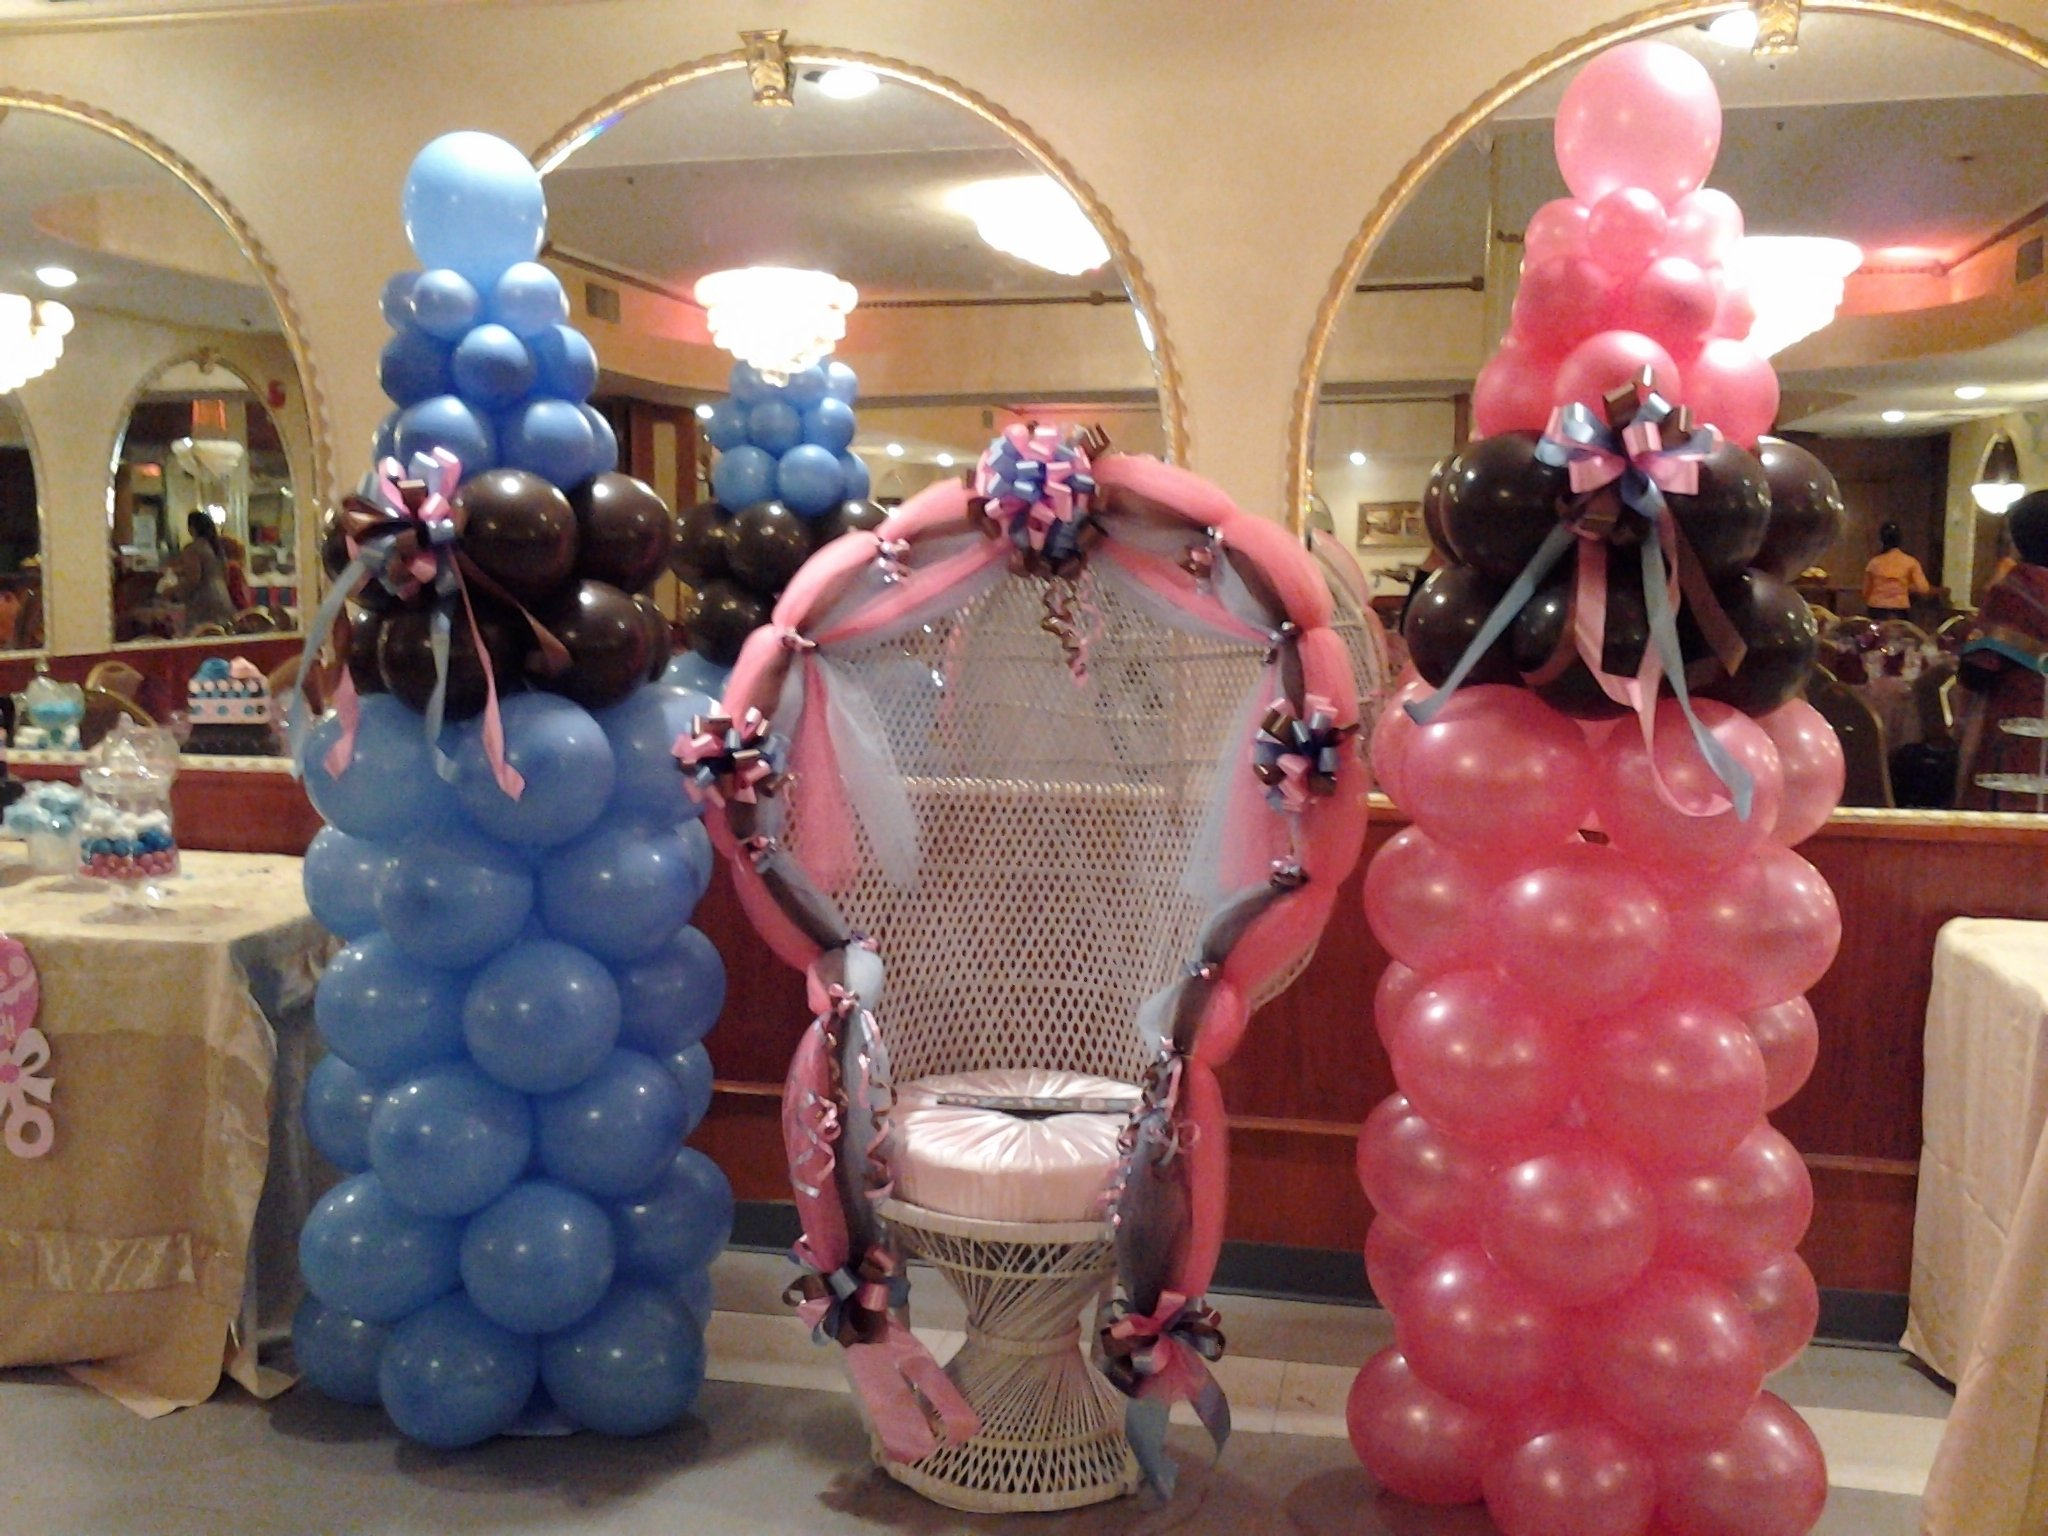 10 Fantastic Baby Shower Chair Decoration Ideas photo baby shower chair rental image 2021